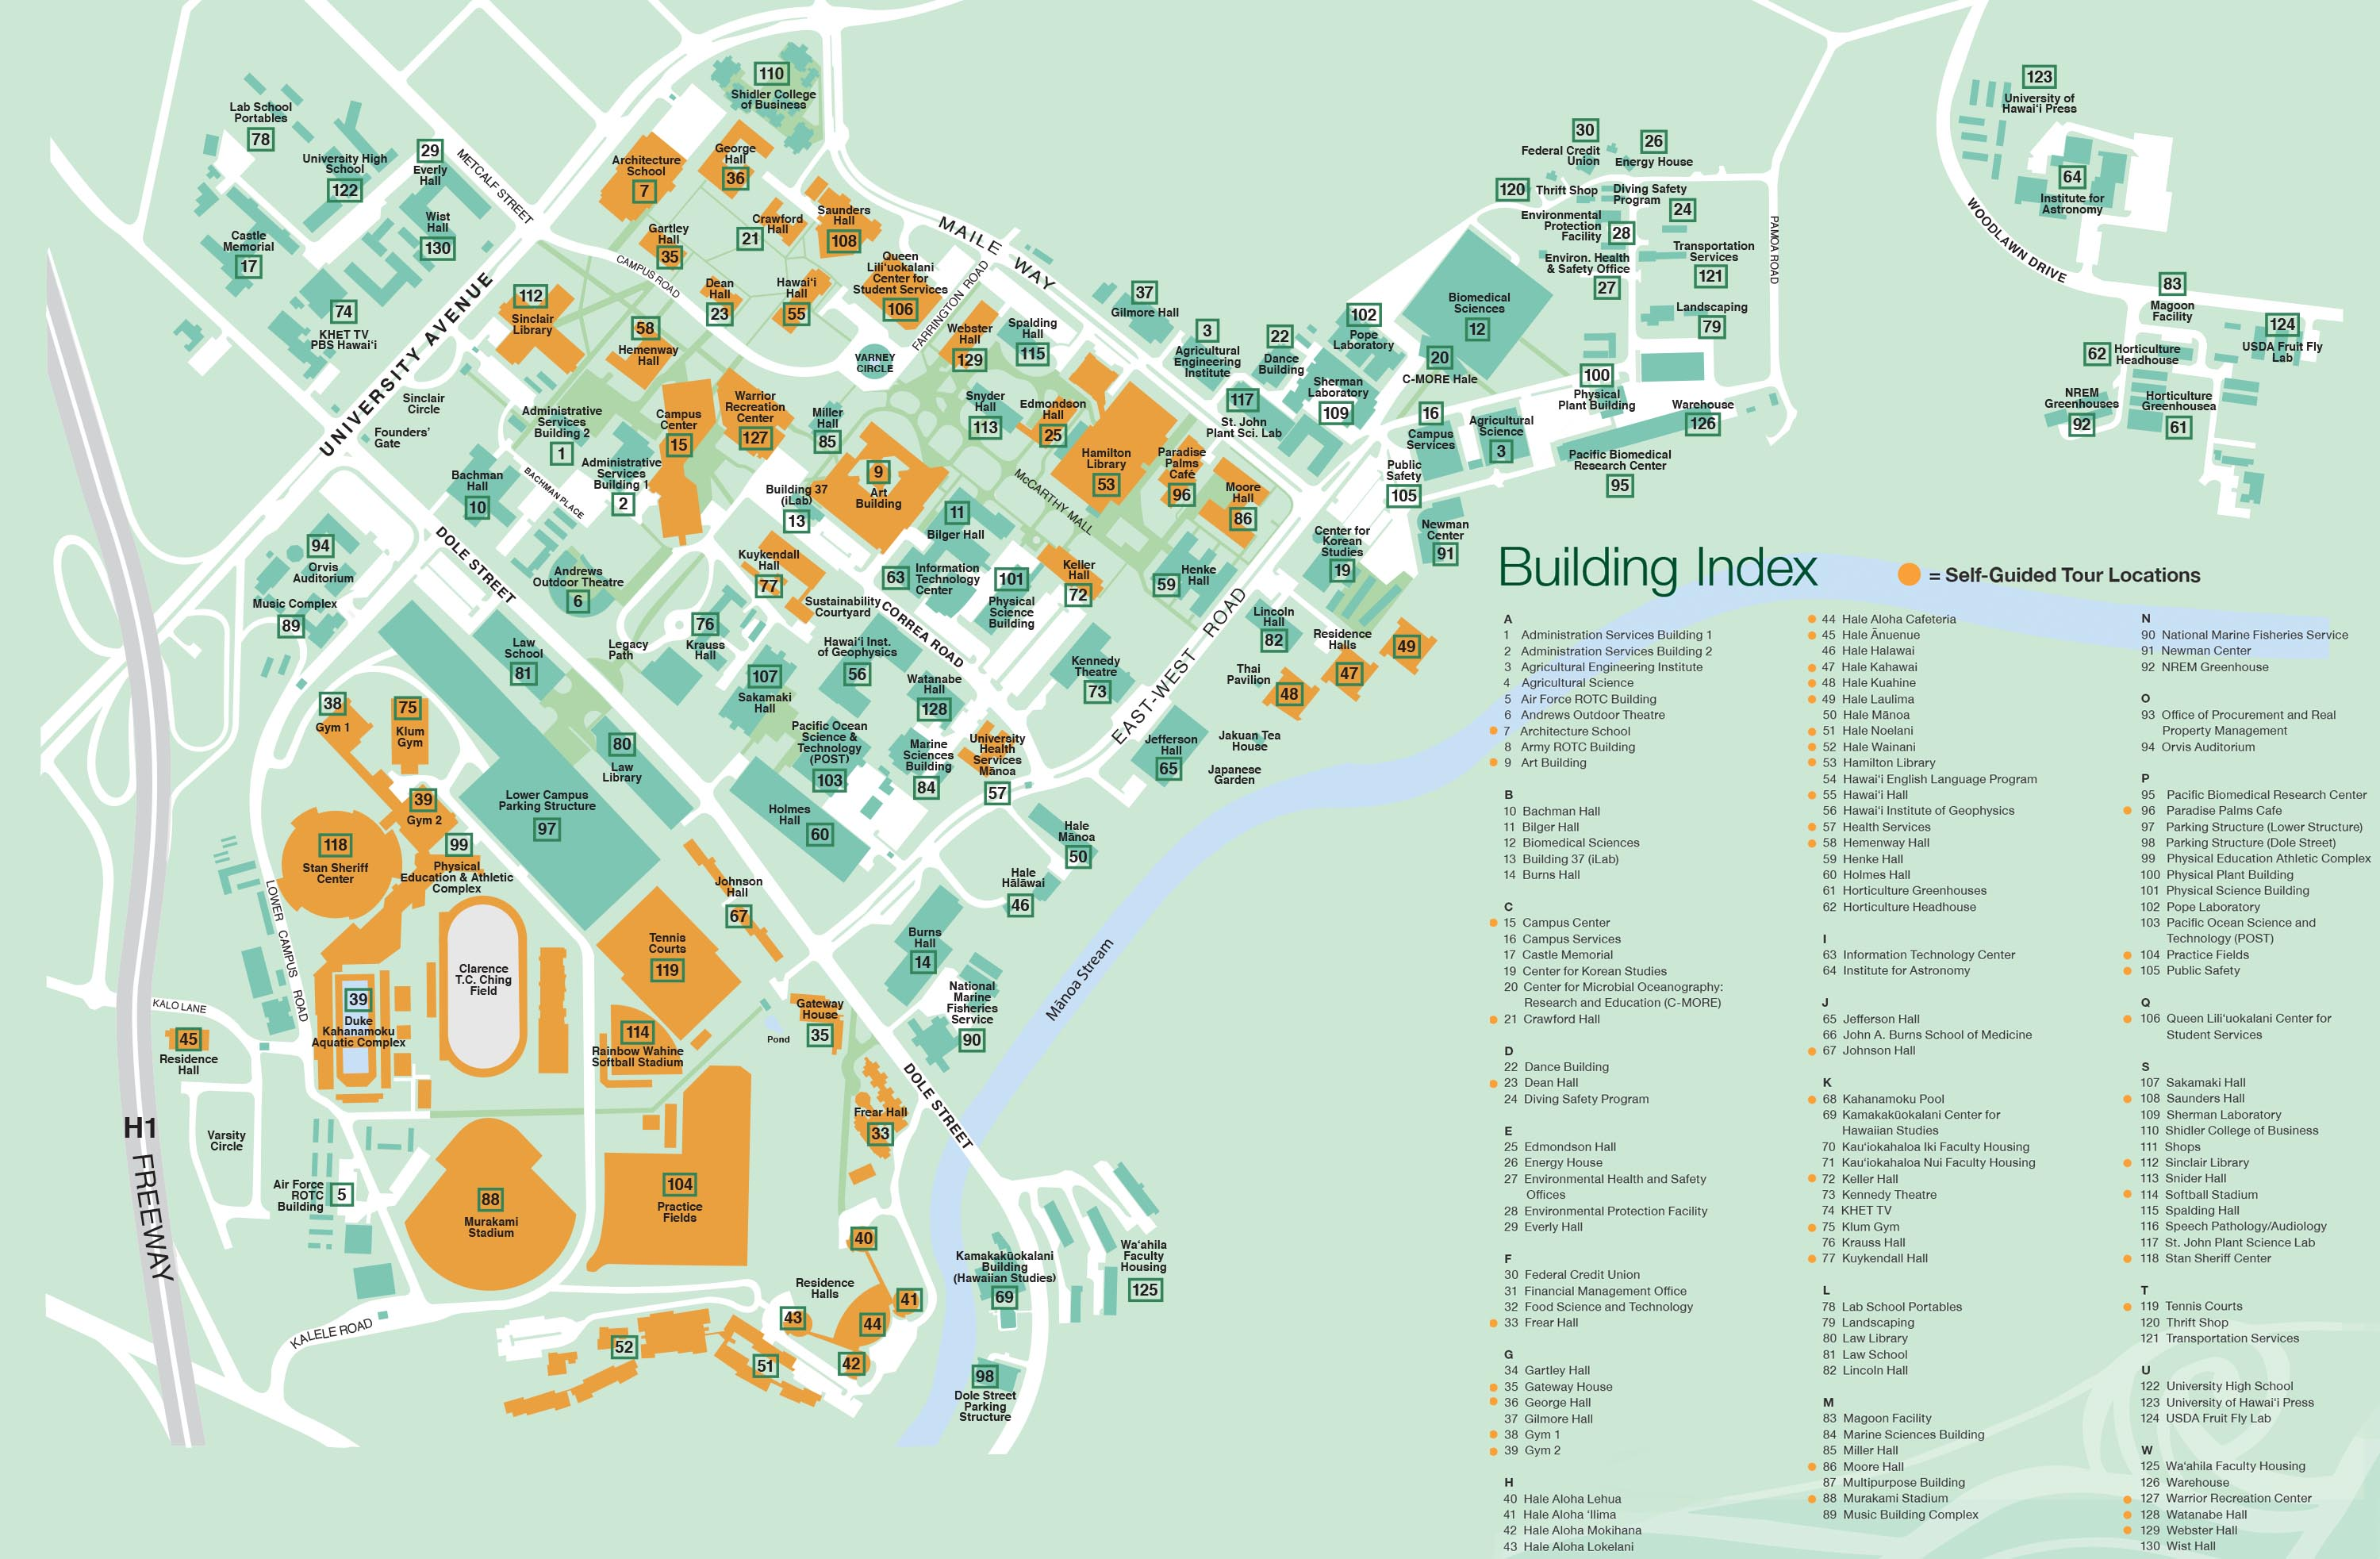 university of st andrews campus map Campus Map University Of Hawaii Visitor S Guide university of st andrews campus map